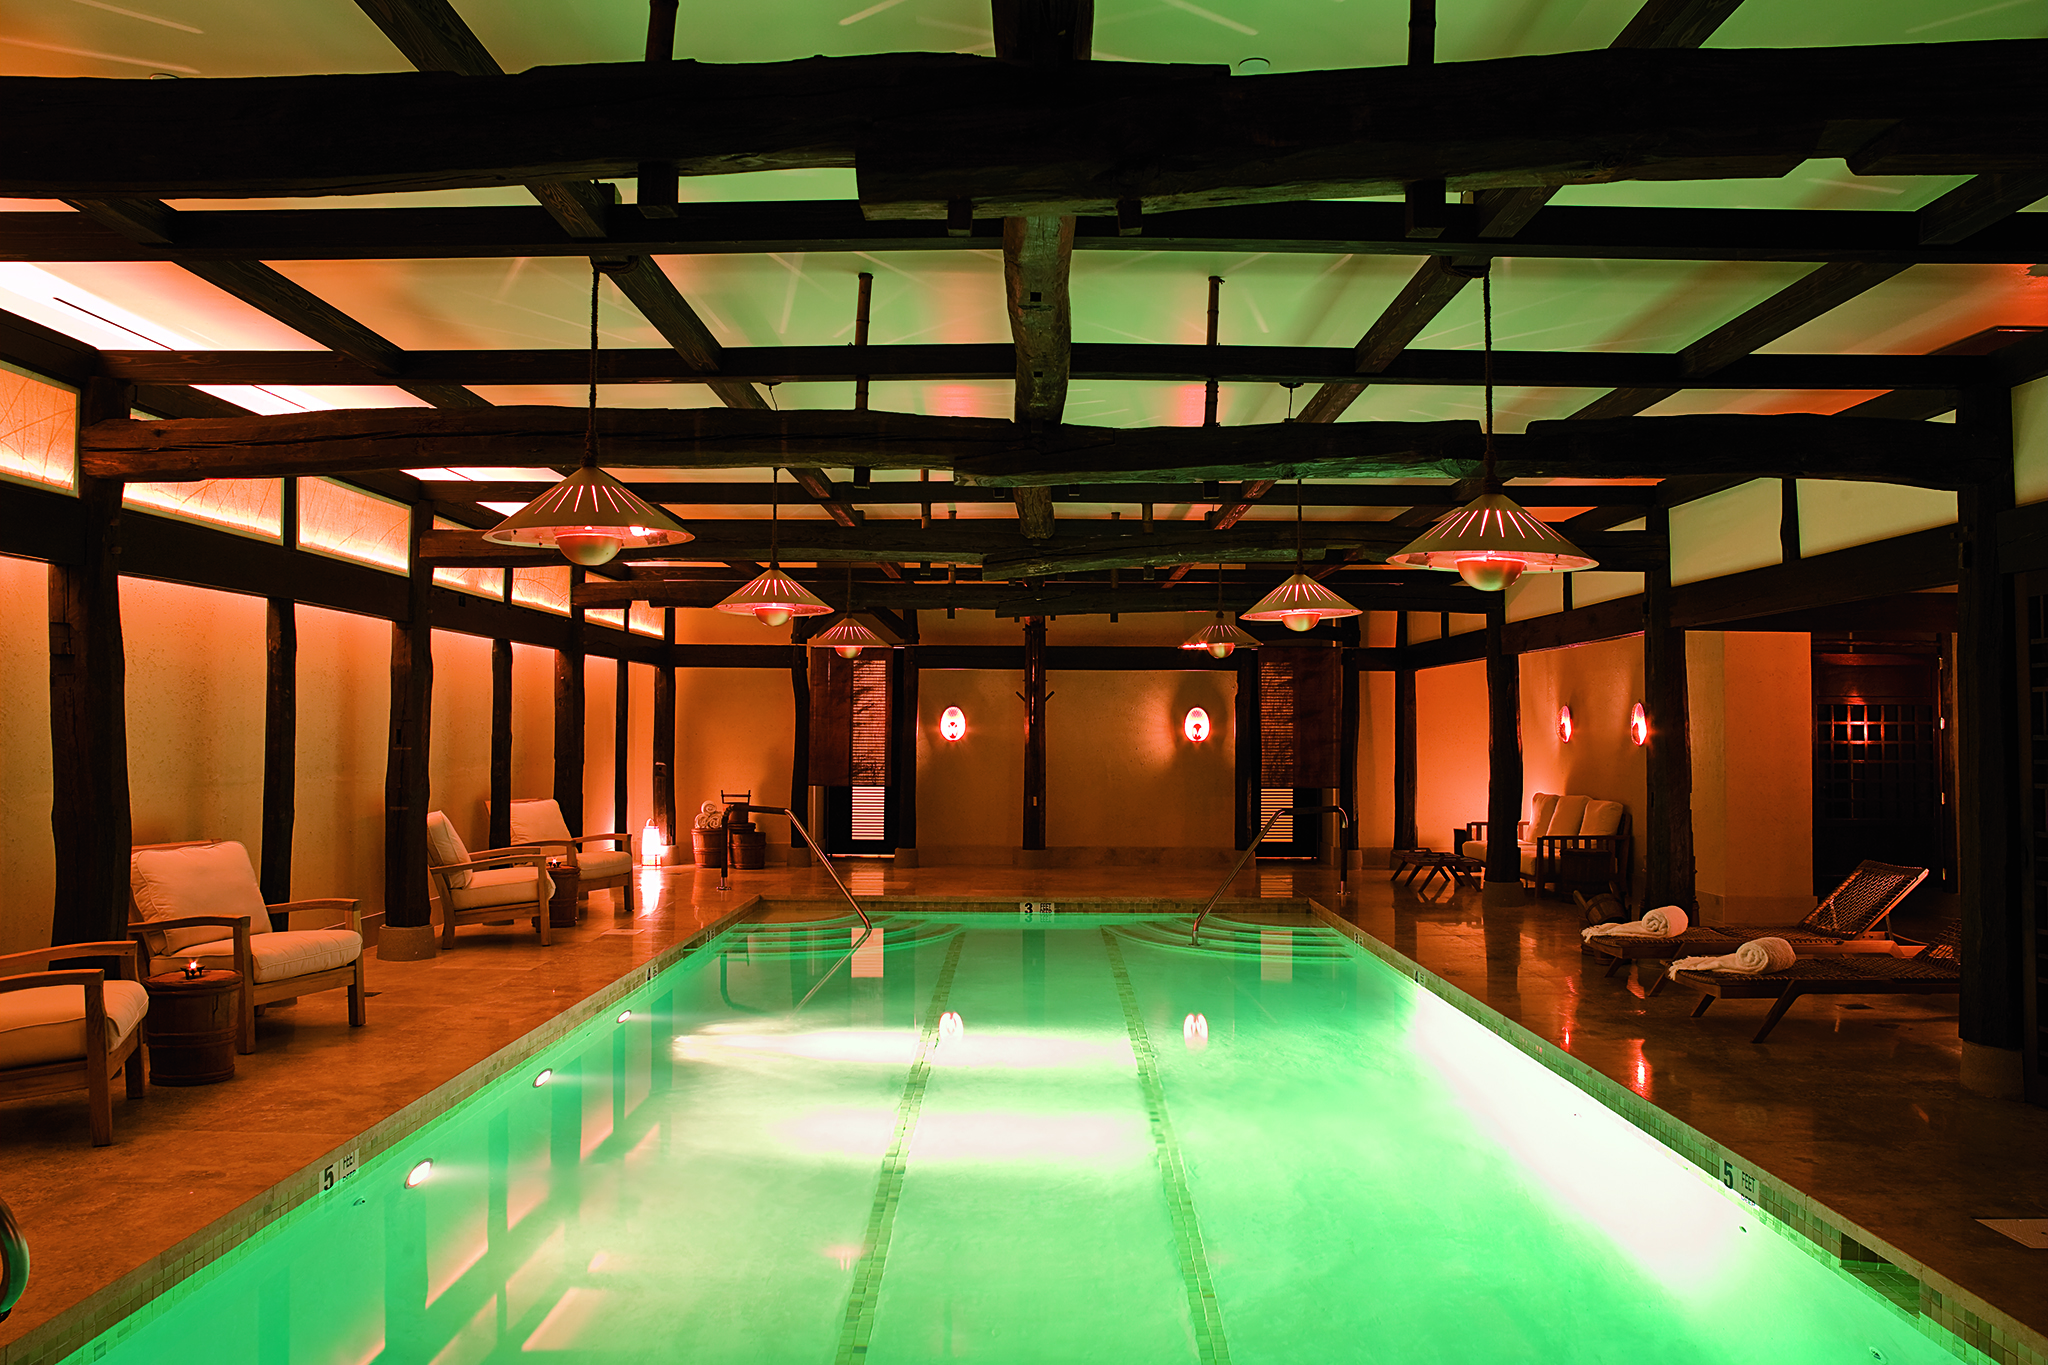 The best hotels with indoor pools in NYC